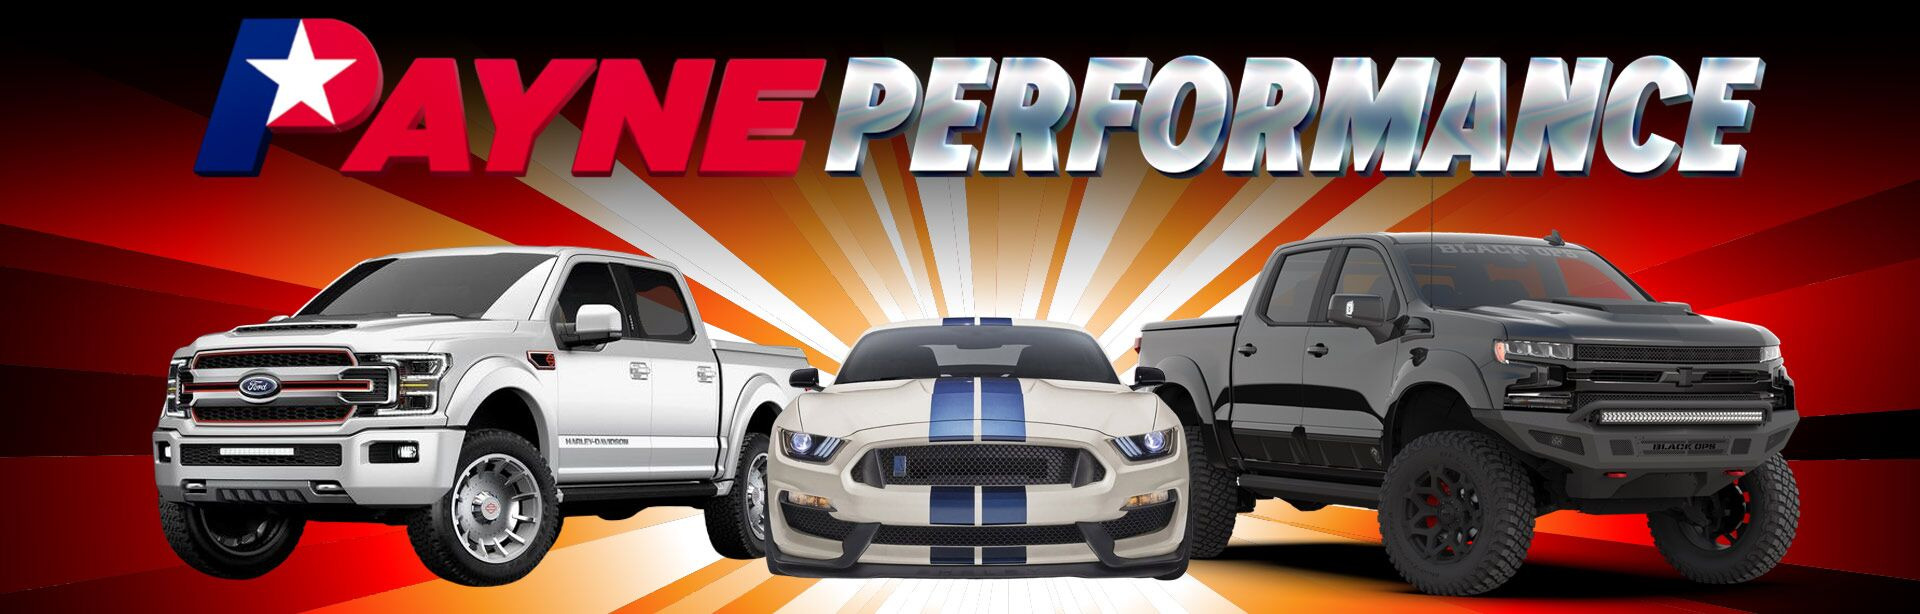 Payne Performance Vehicles